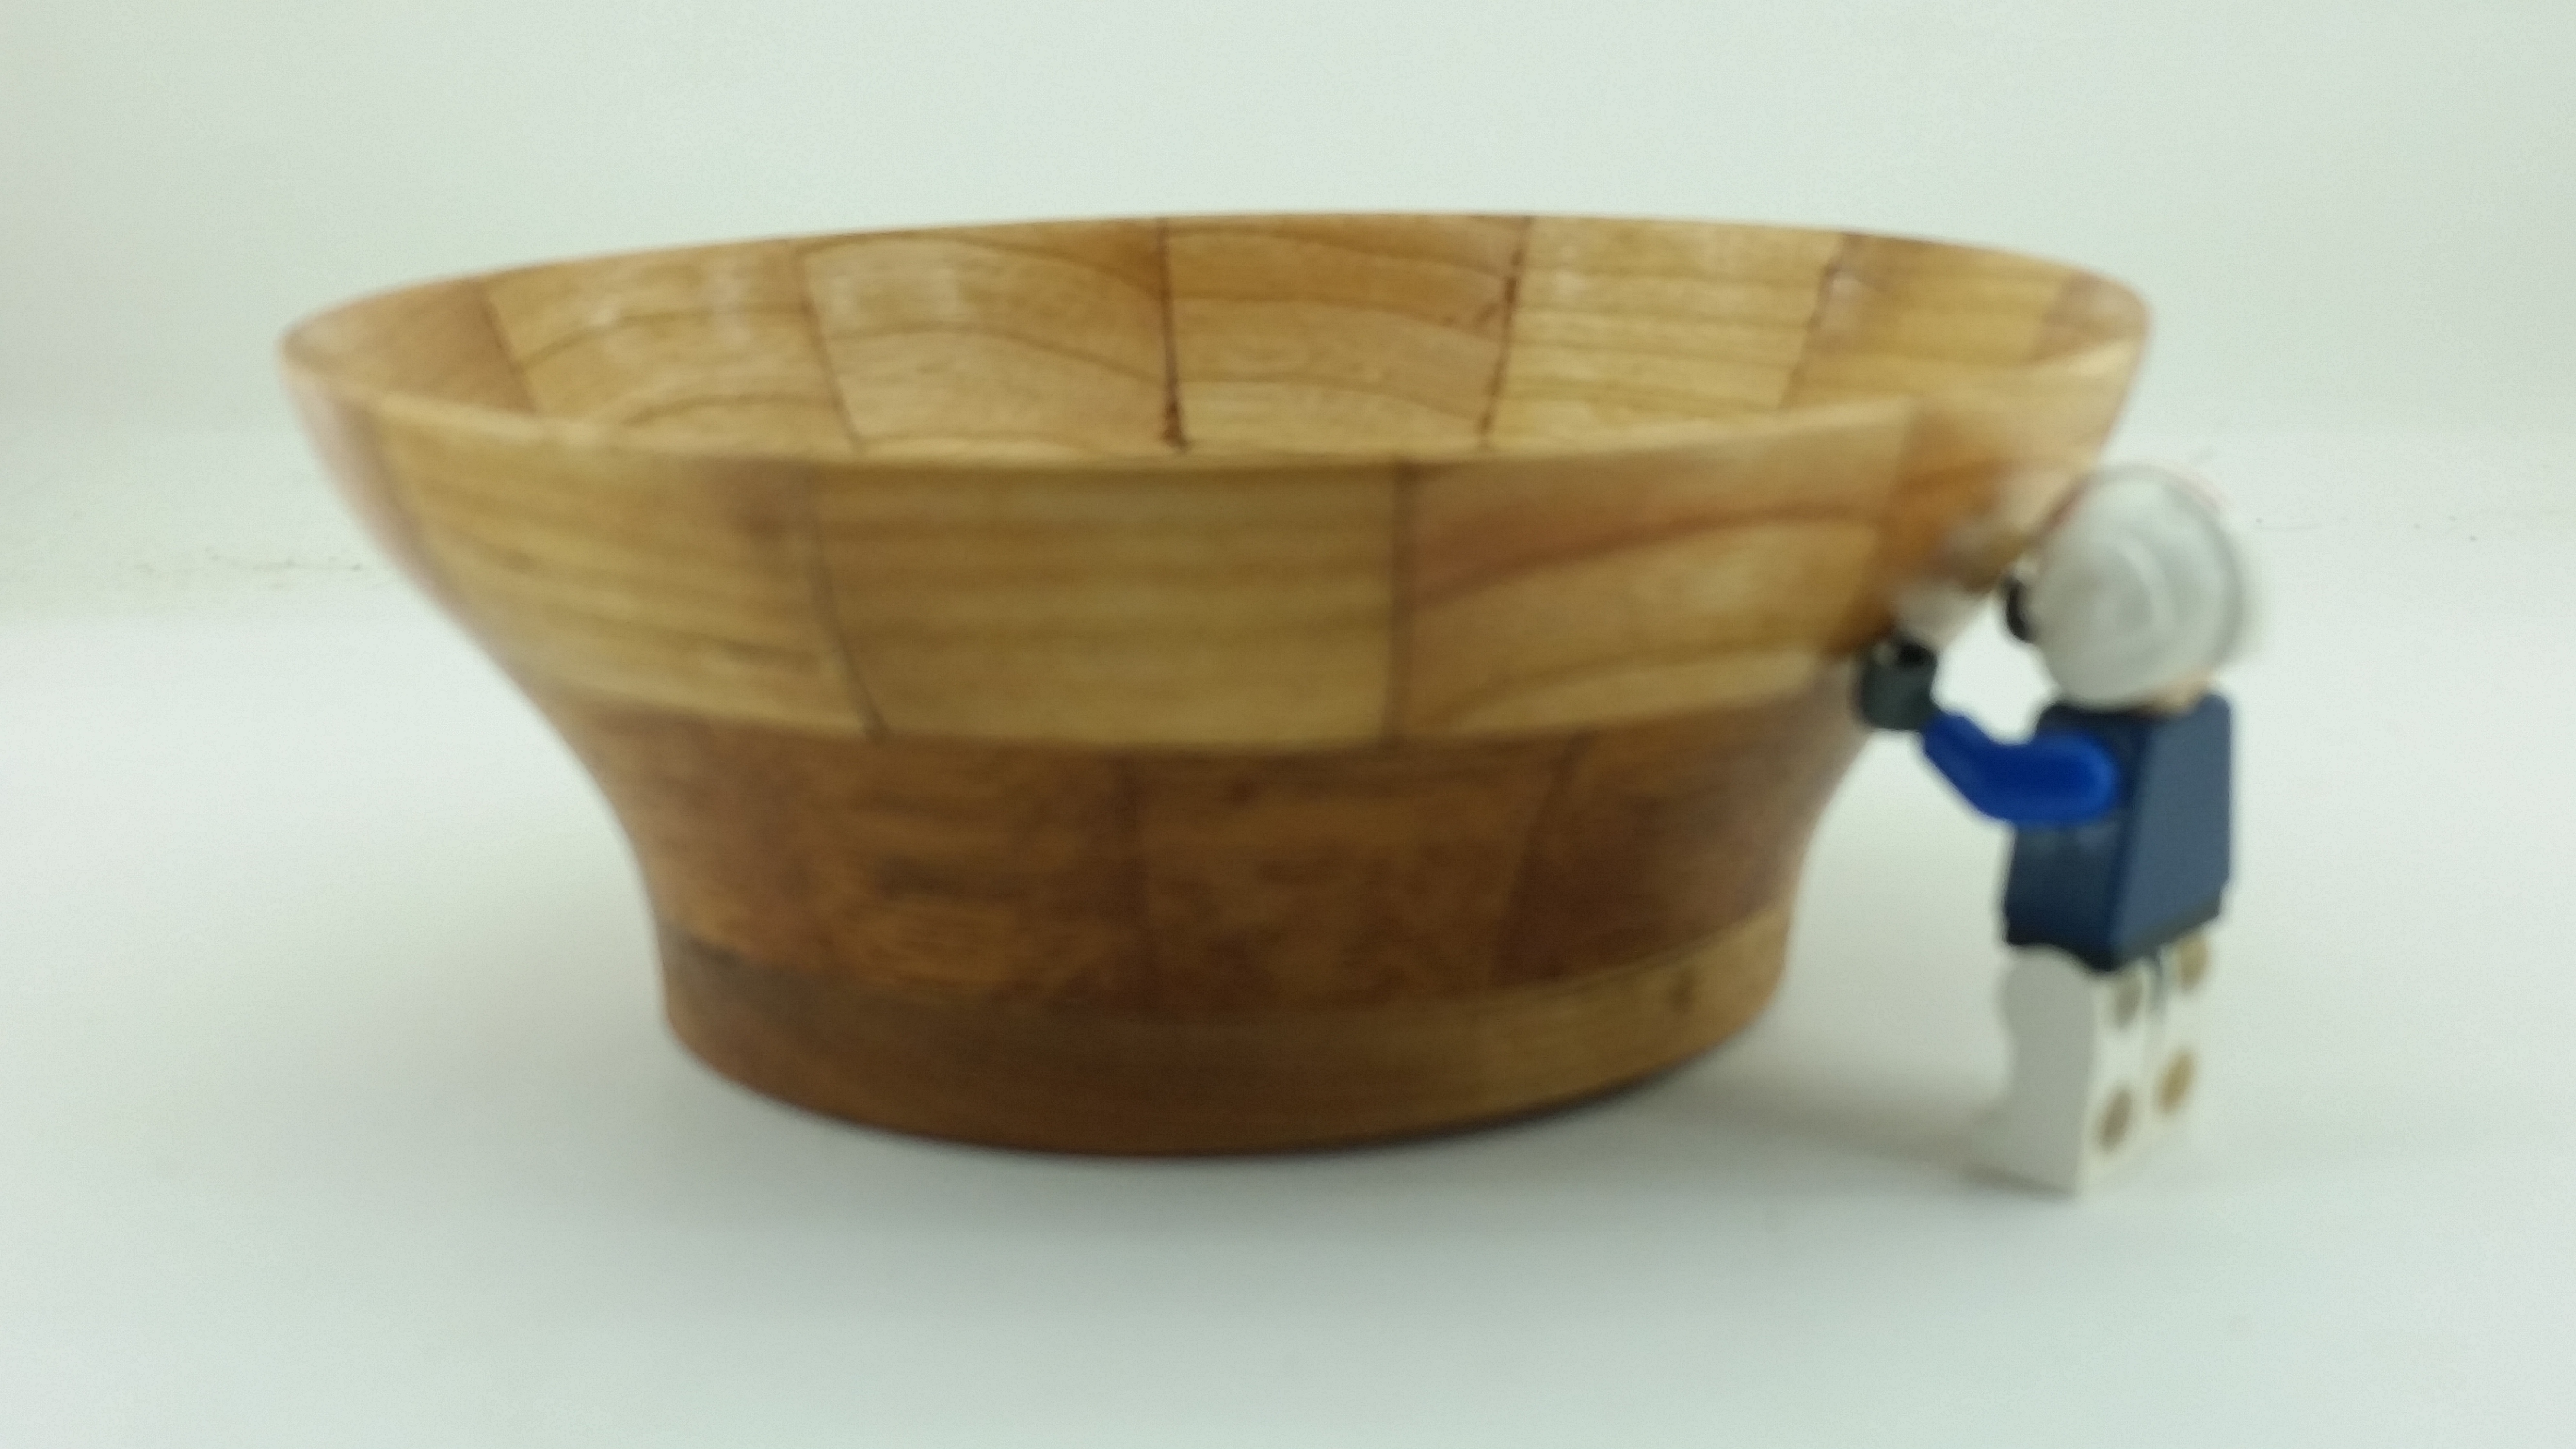 first segmented bowl